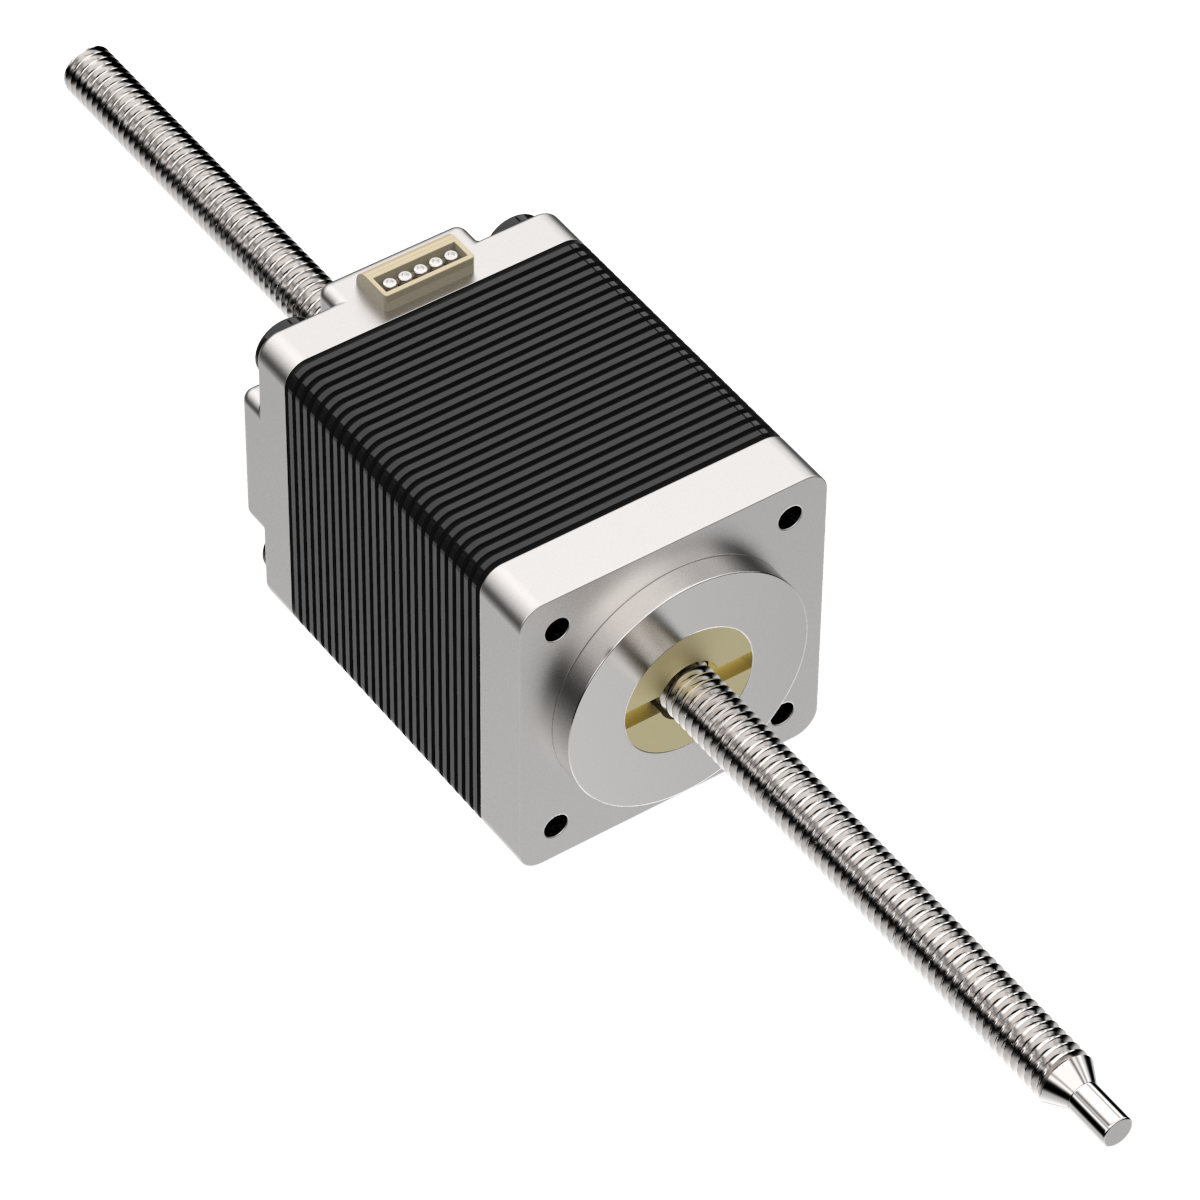 Stepper Motor Linear Actuator - Non-Captive - SMA-8SN-012024-2.5V